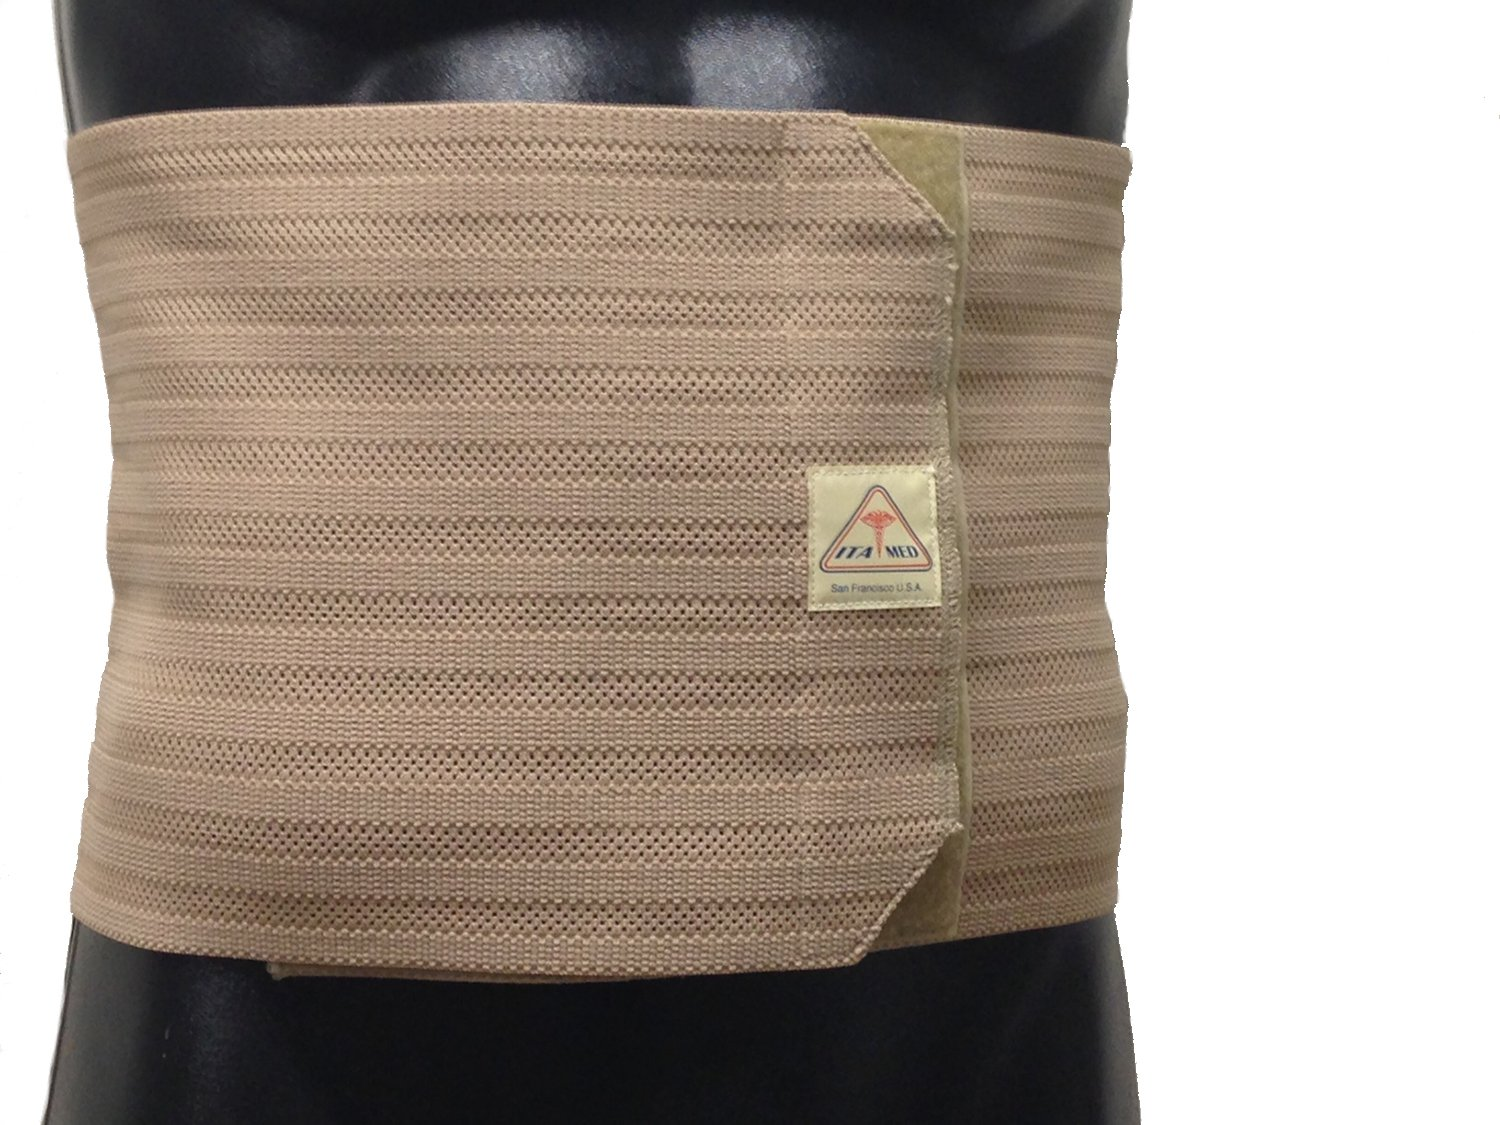 Breathable Elastic Abdominal Binder for Men Size: Small, Color: Beige by ITA-MED